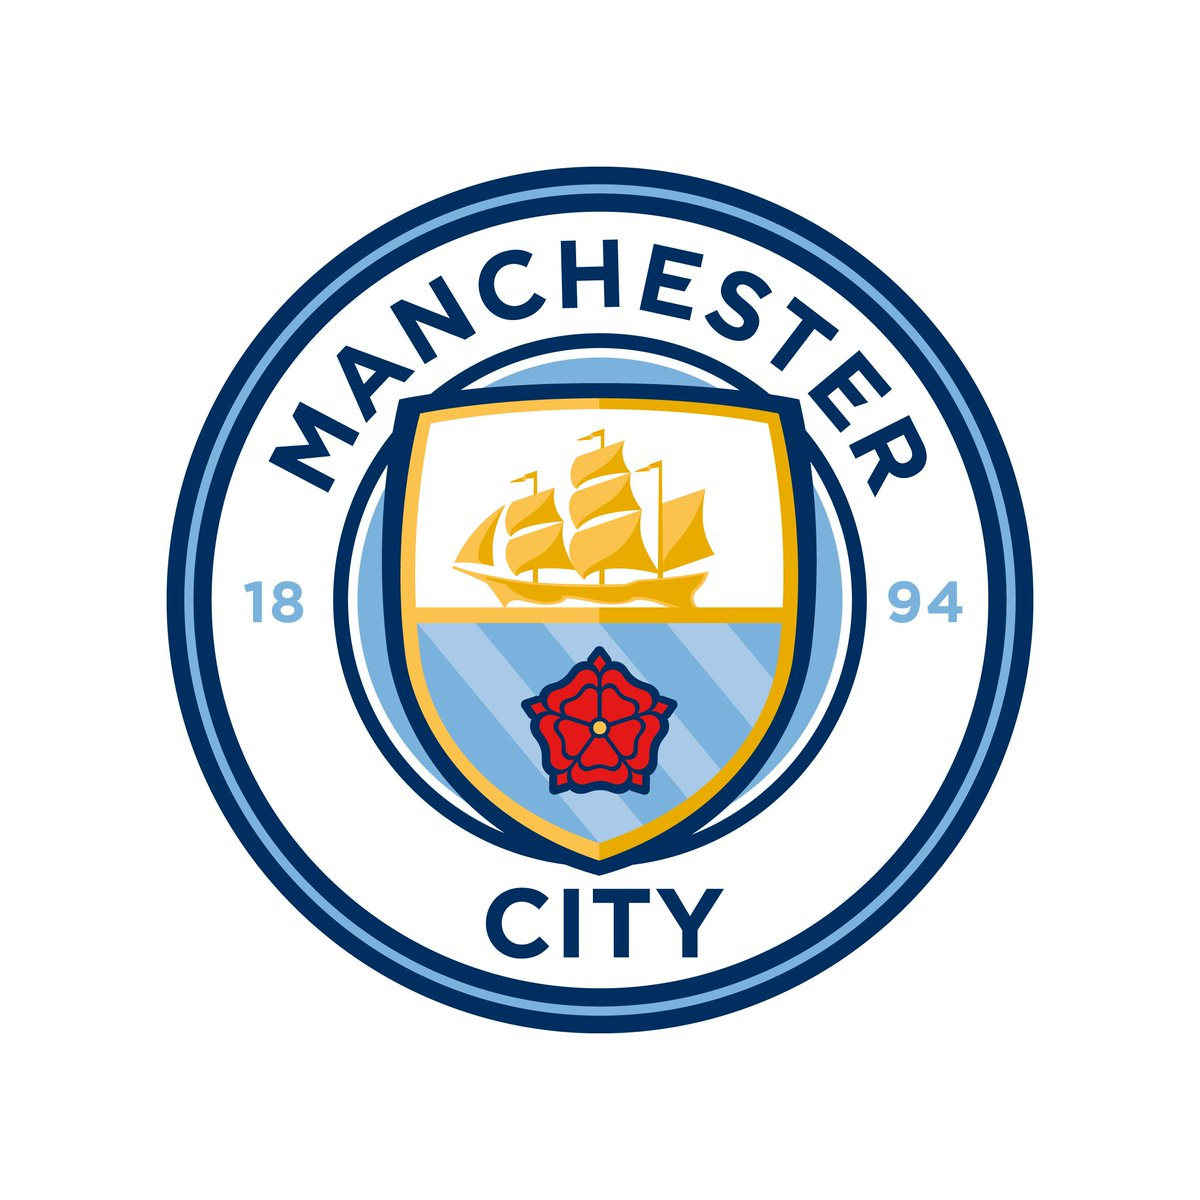 It appears this is the new Manchester City badge https://t.co/8kiouqfwhz #mcfc https://t.co/zjvu2RcmOa